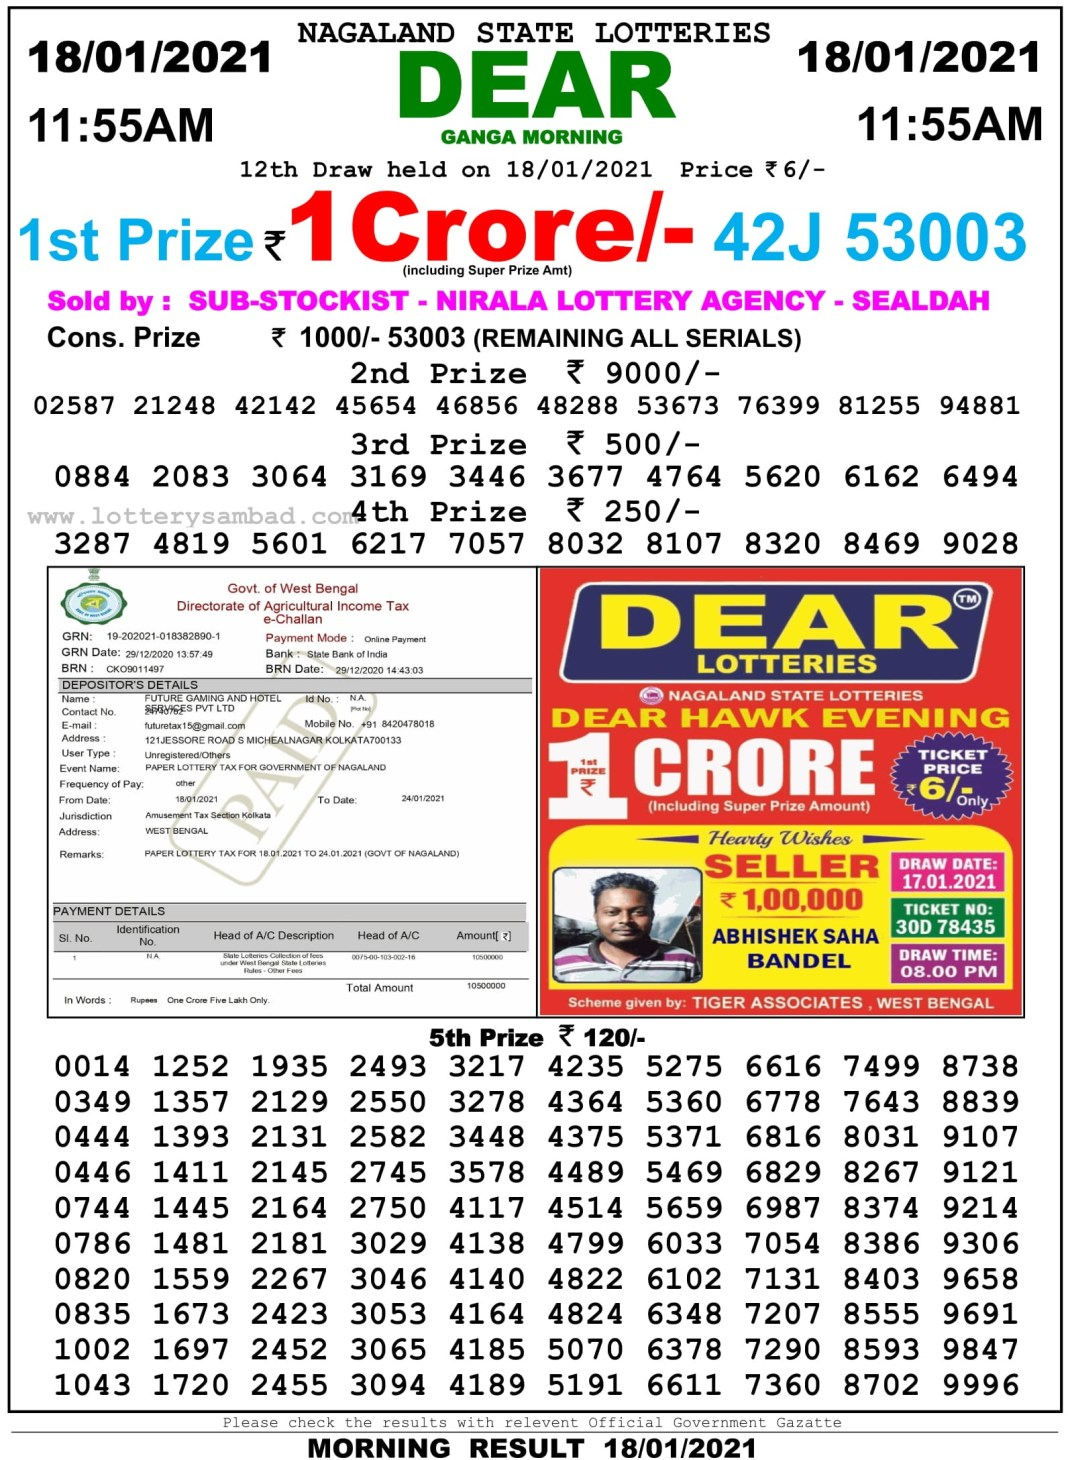 Sikkim State Lottery Result 11.55 AM 18.1.2021